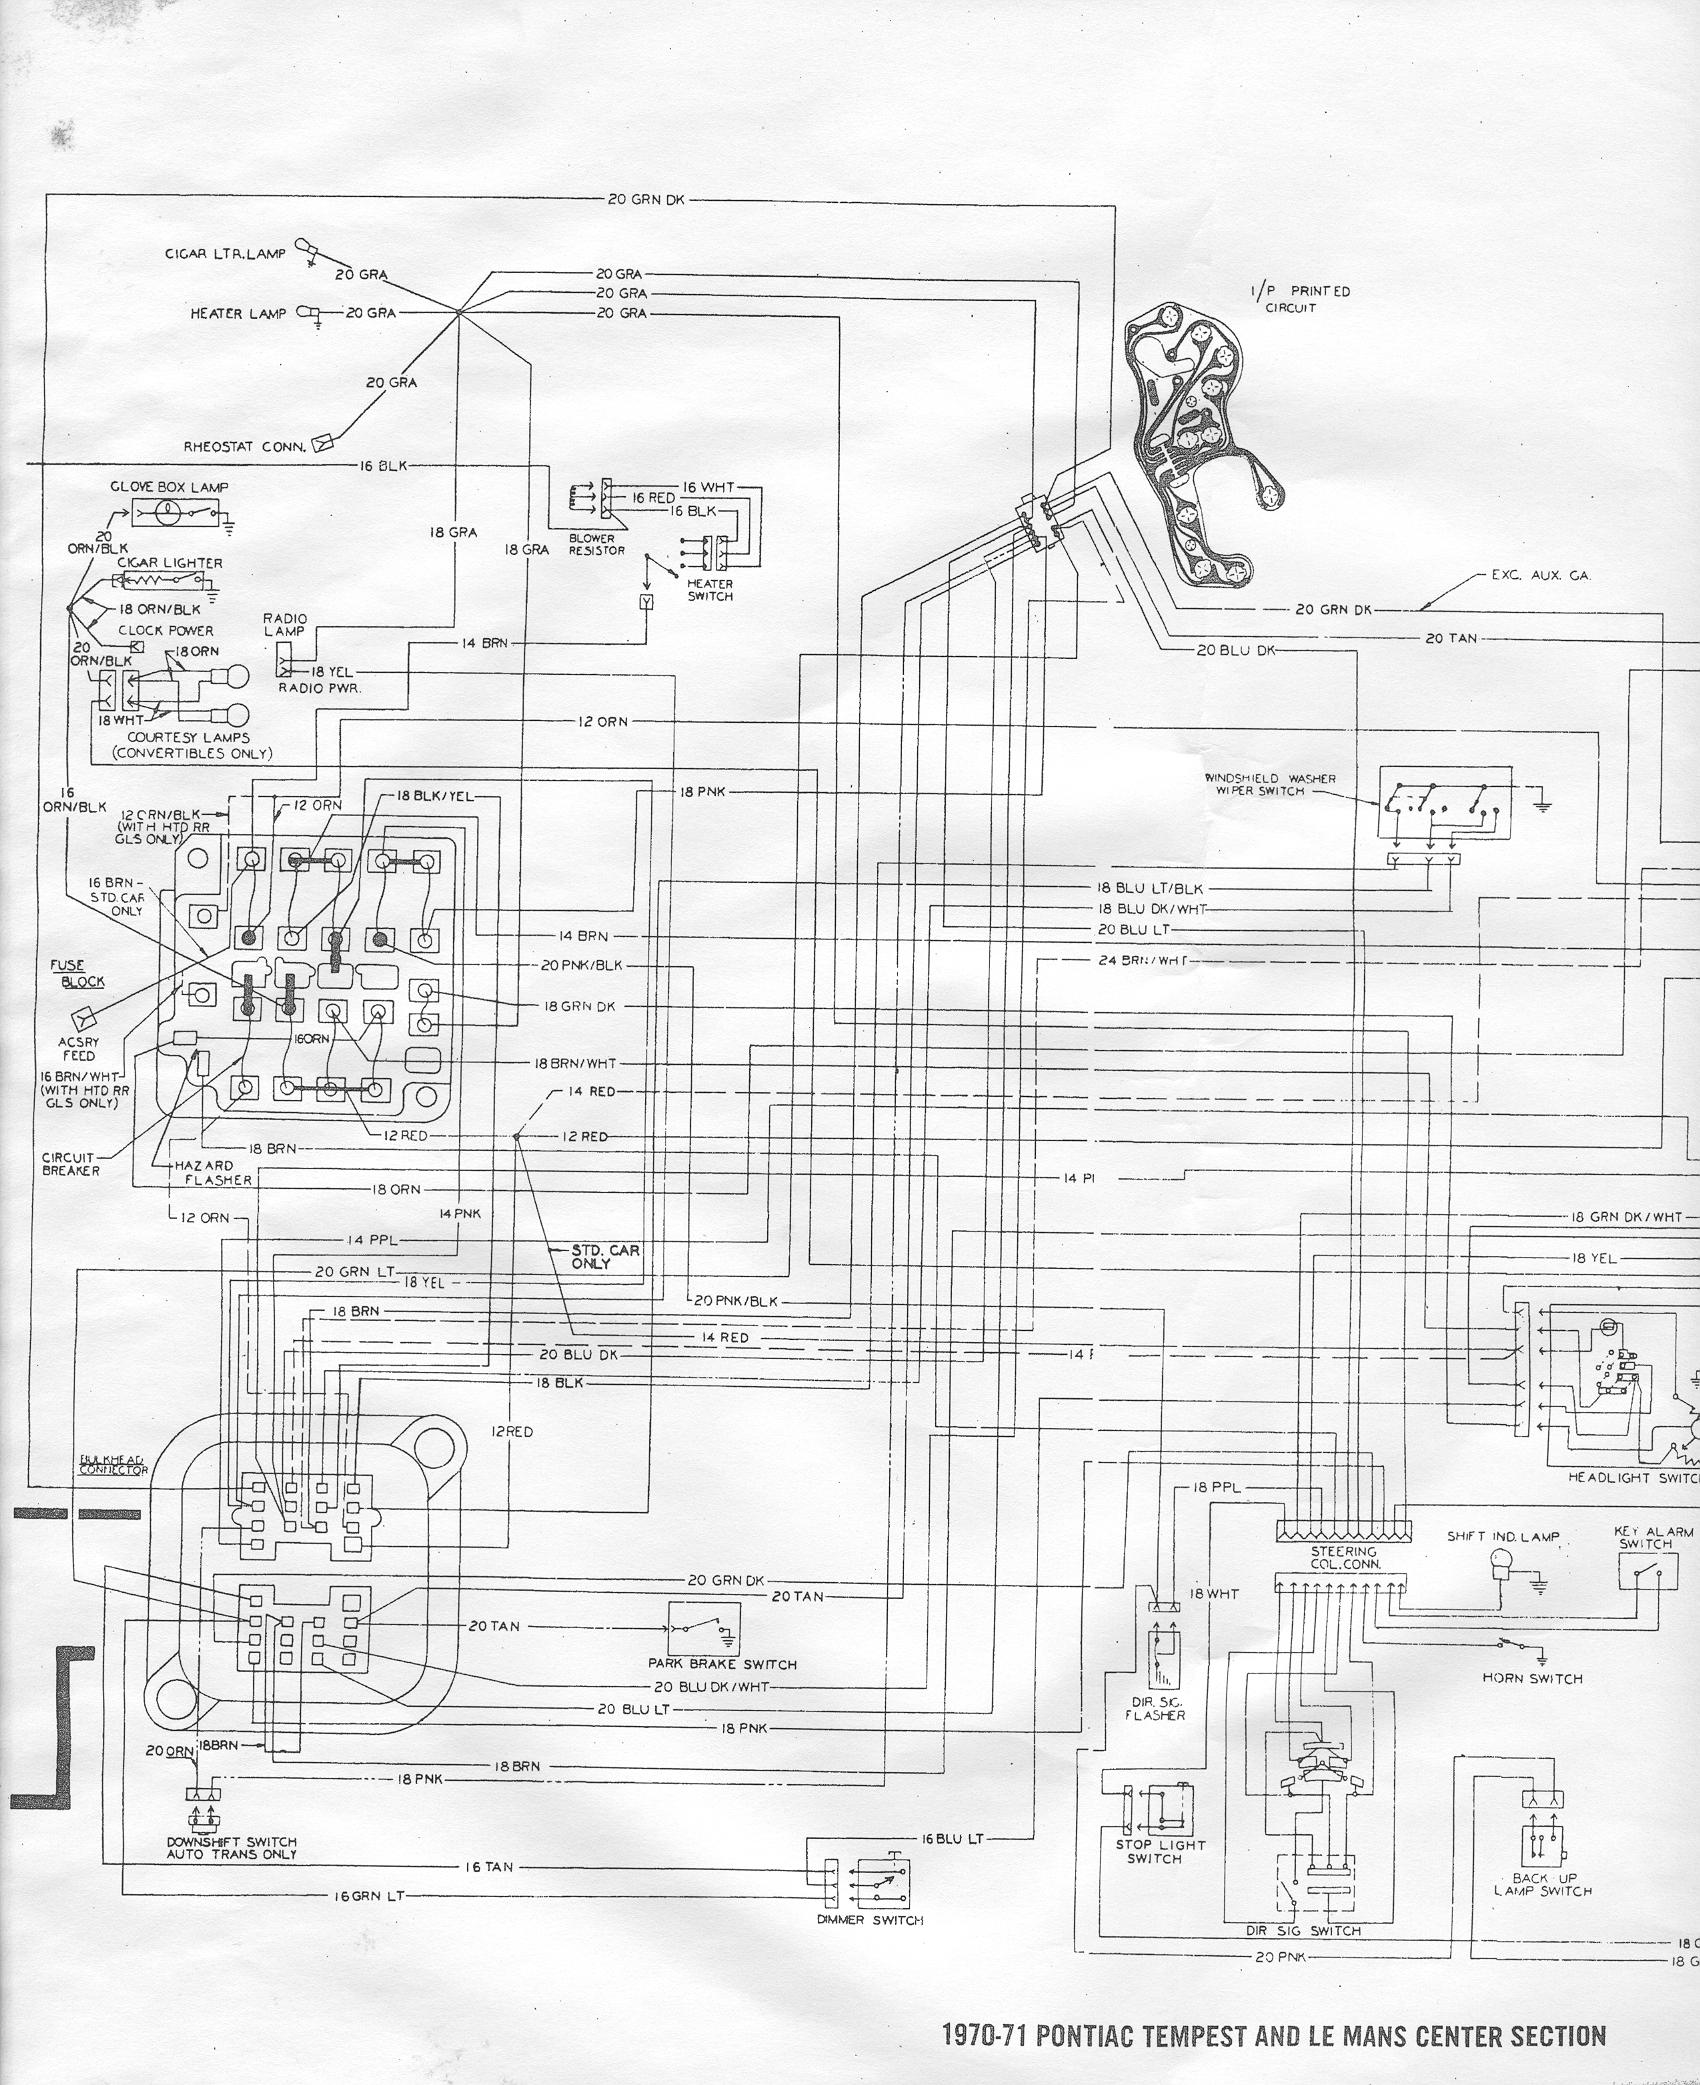 gto wiring diagram scans pontiac gto forum jpg views 21580 size click image for larger version 70 71 gto page3